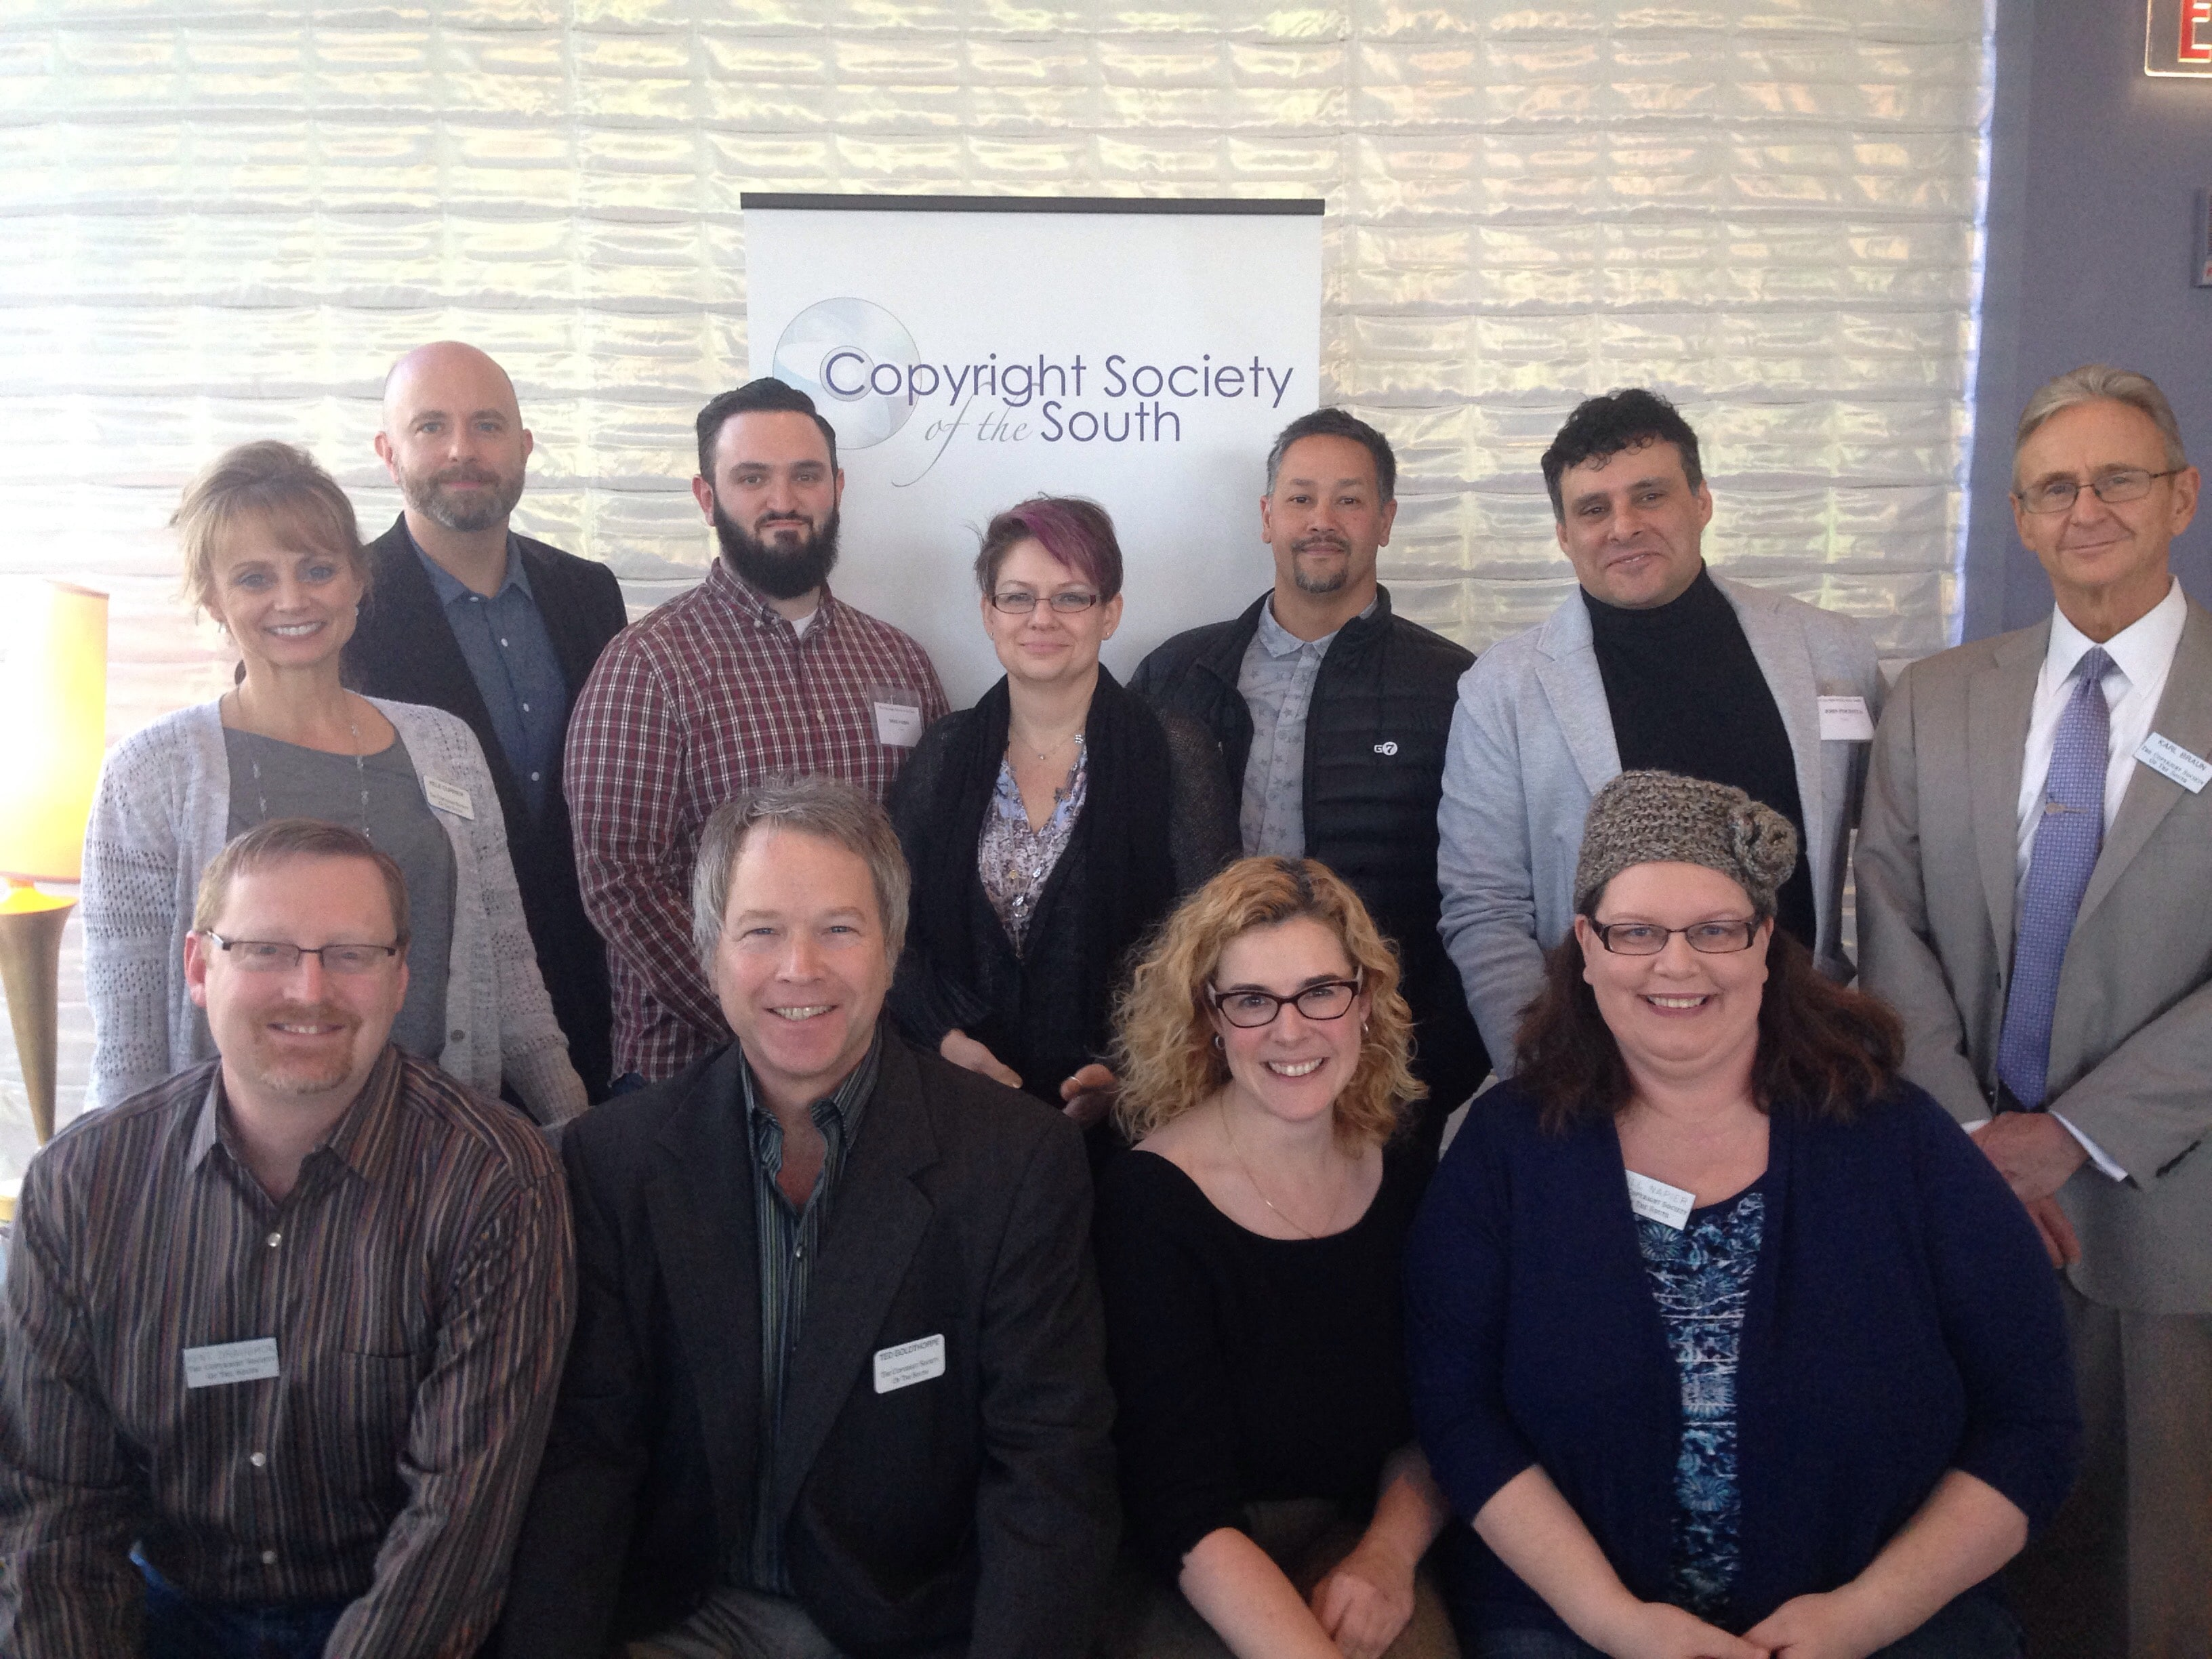 Pictured (top row, L-R): Kele Currier (ASCAP), Shawn Yeager, Mike Fabio, Heather McBee, Wayne Leeloy, John Pisciotta, Karl Braun (Hall, Booth, Smith). Pictured (bottom row, L-R): Kent Draughon (Capitol CMG), Ted Goldthorpe (Sony/ATV), Jill Napier (Music Pub Works)